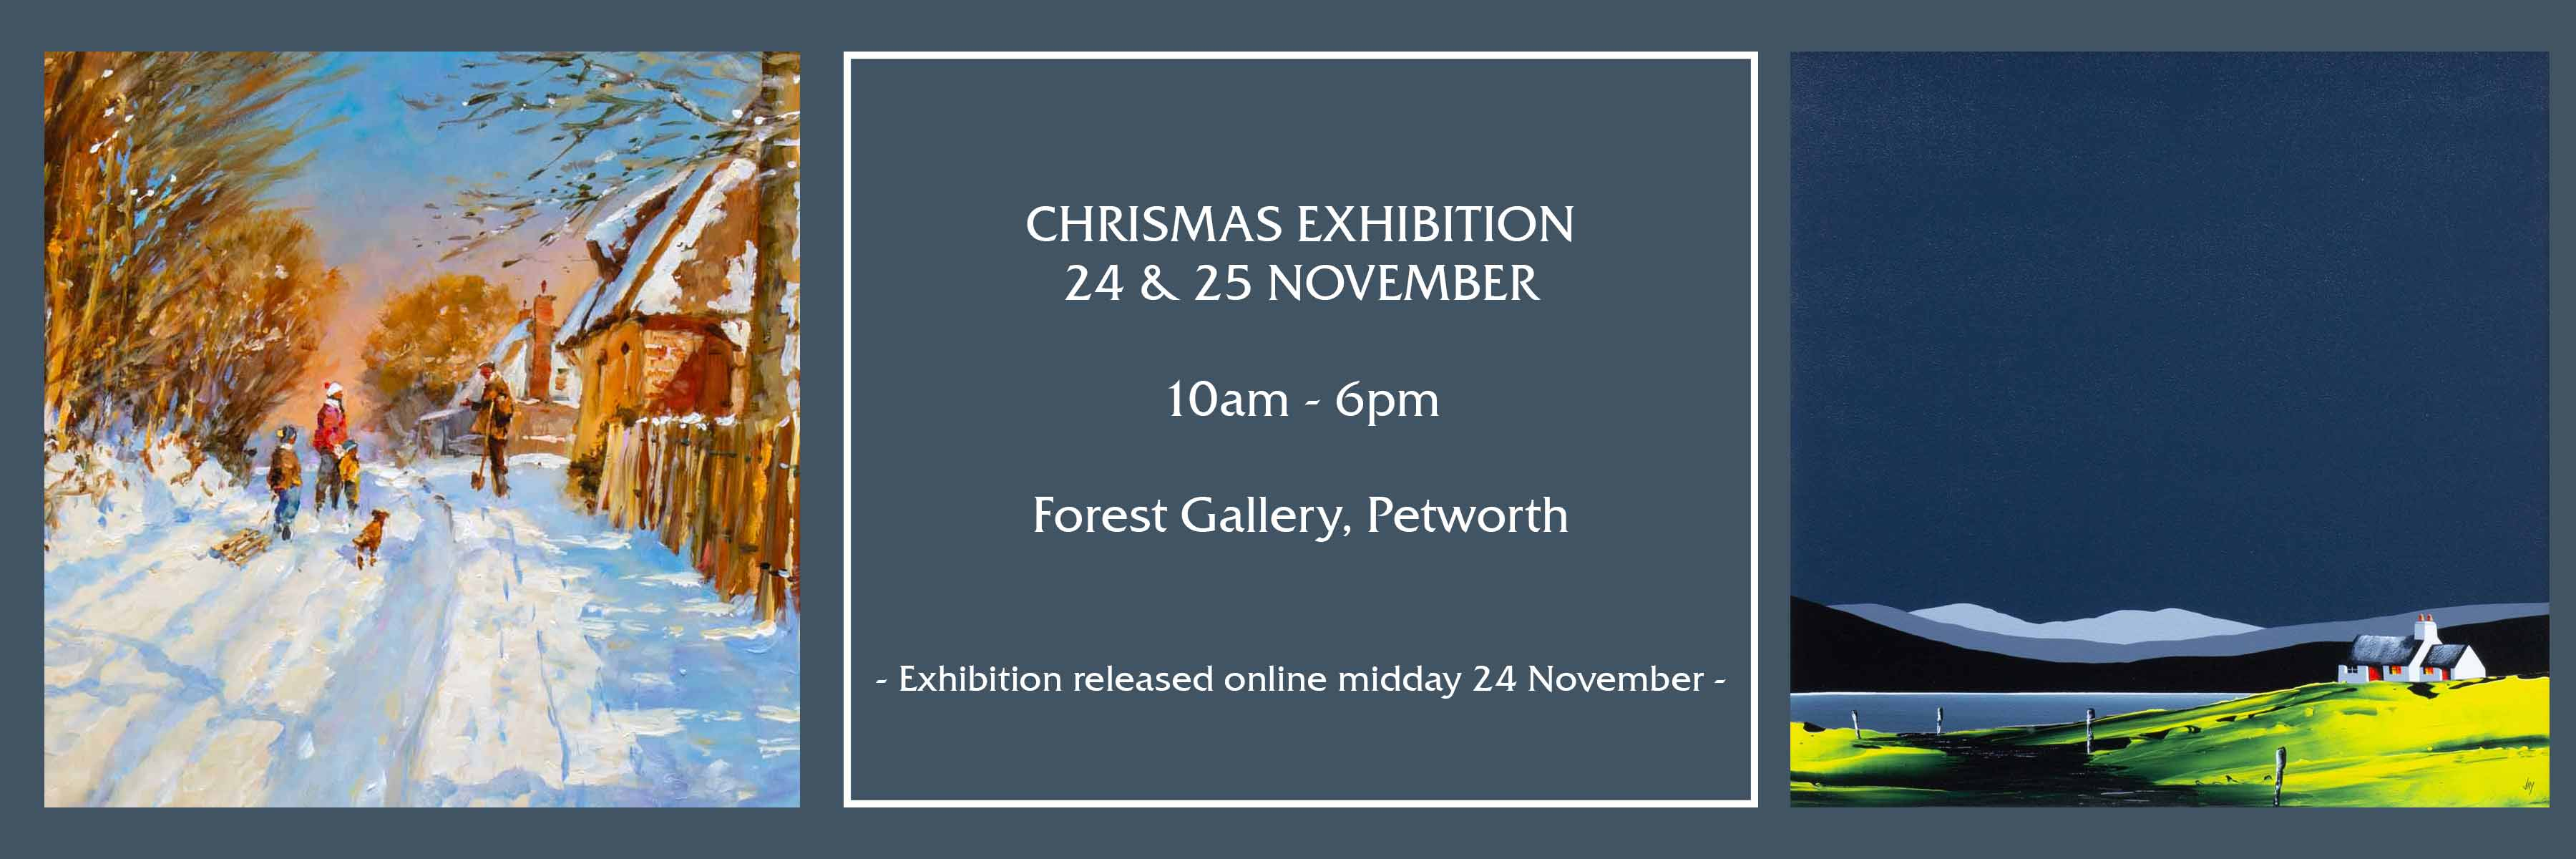 Christmas Exhibition Art Gallery